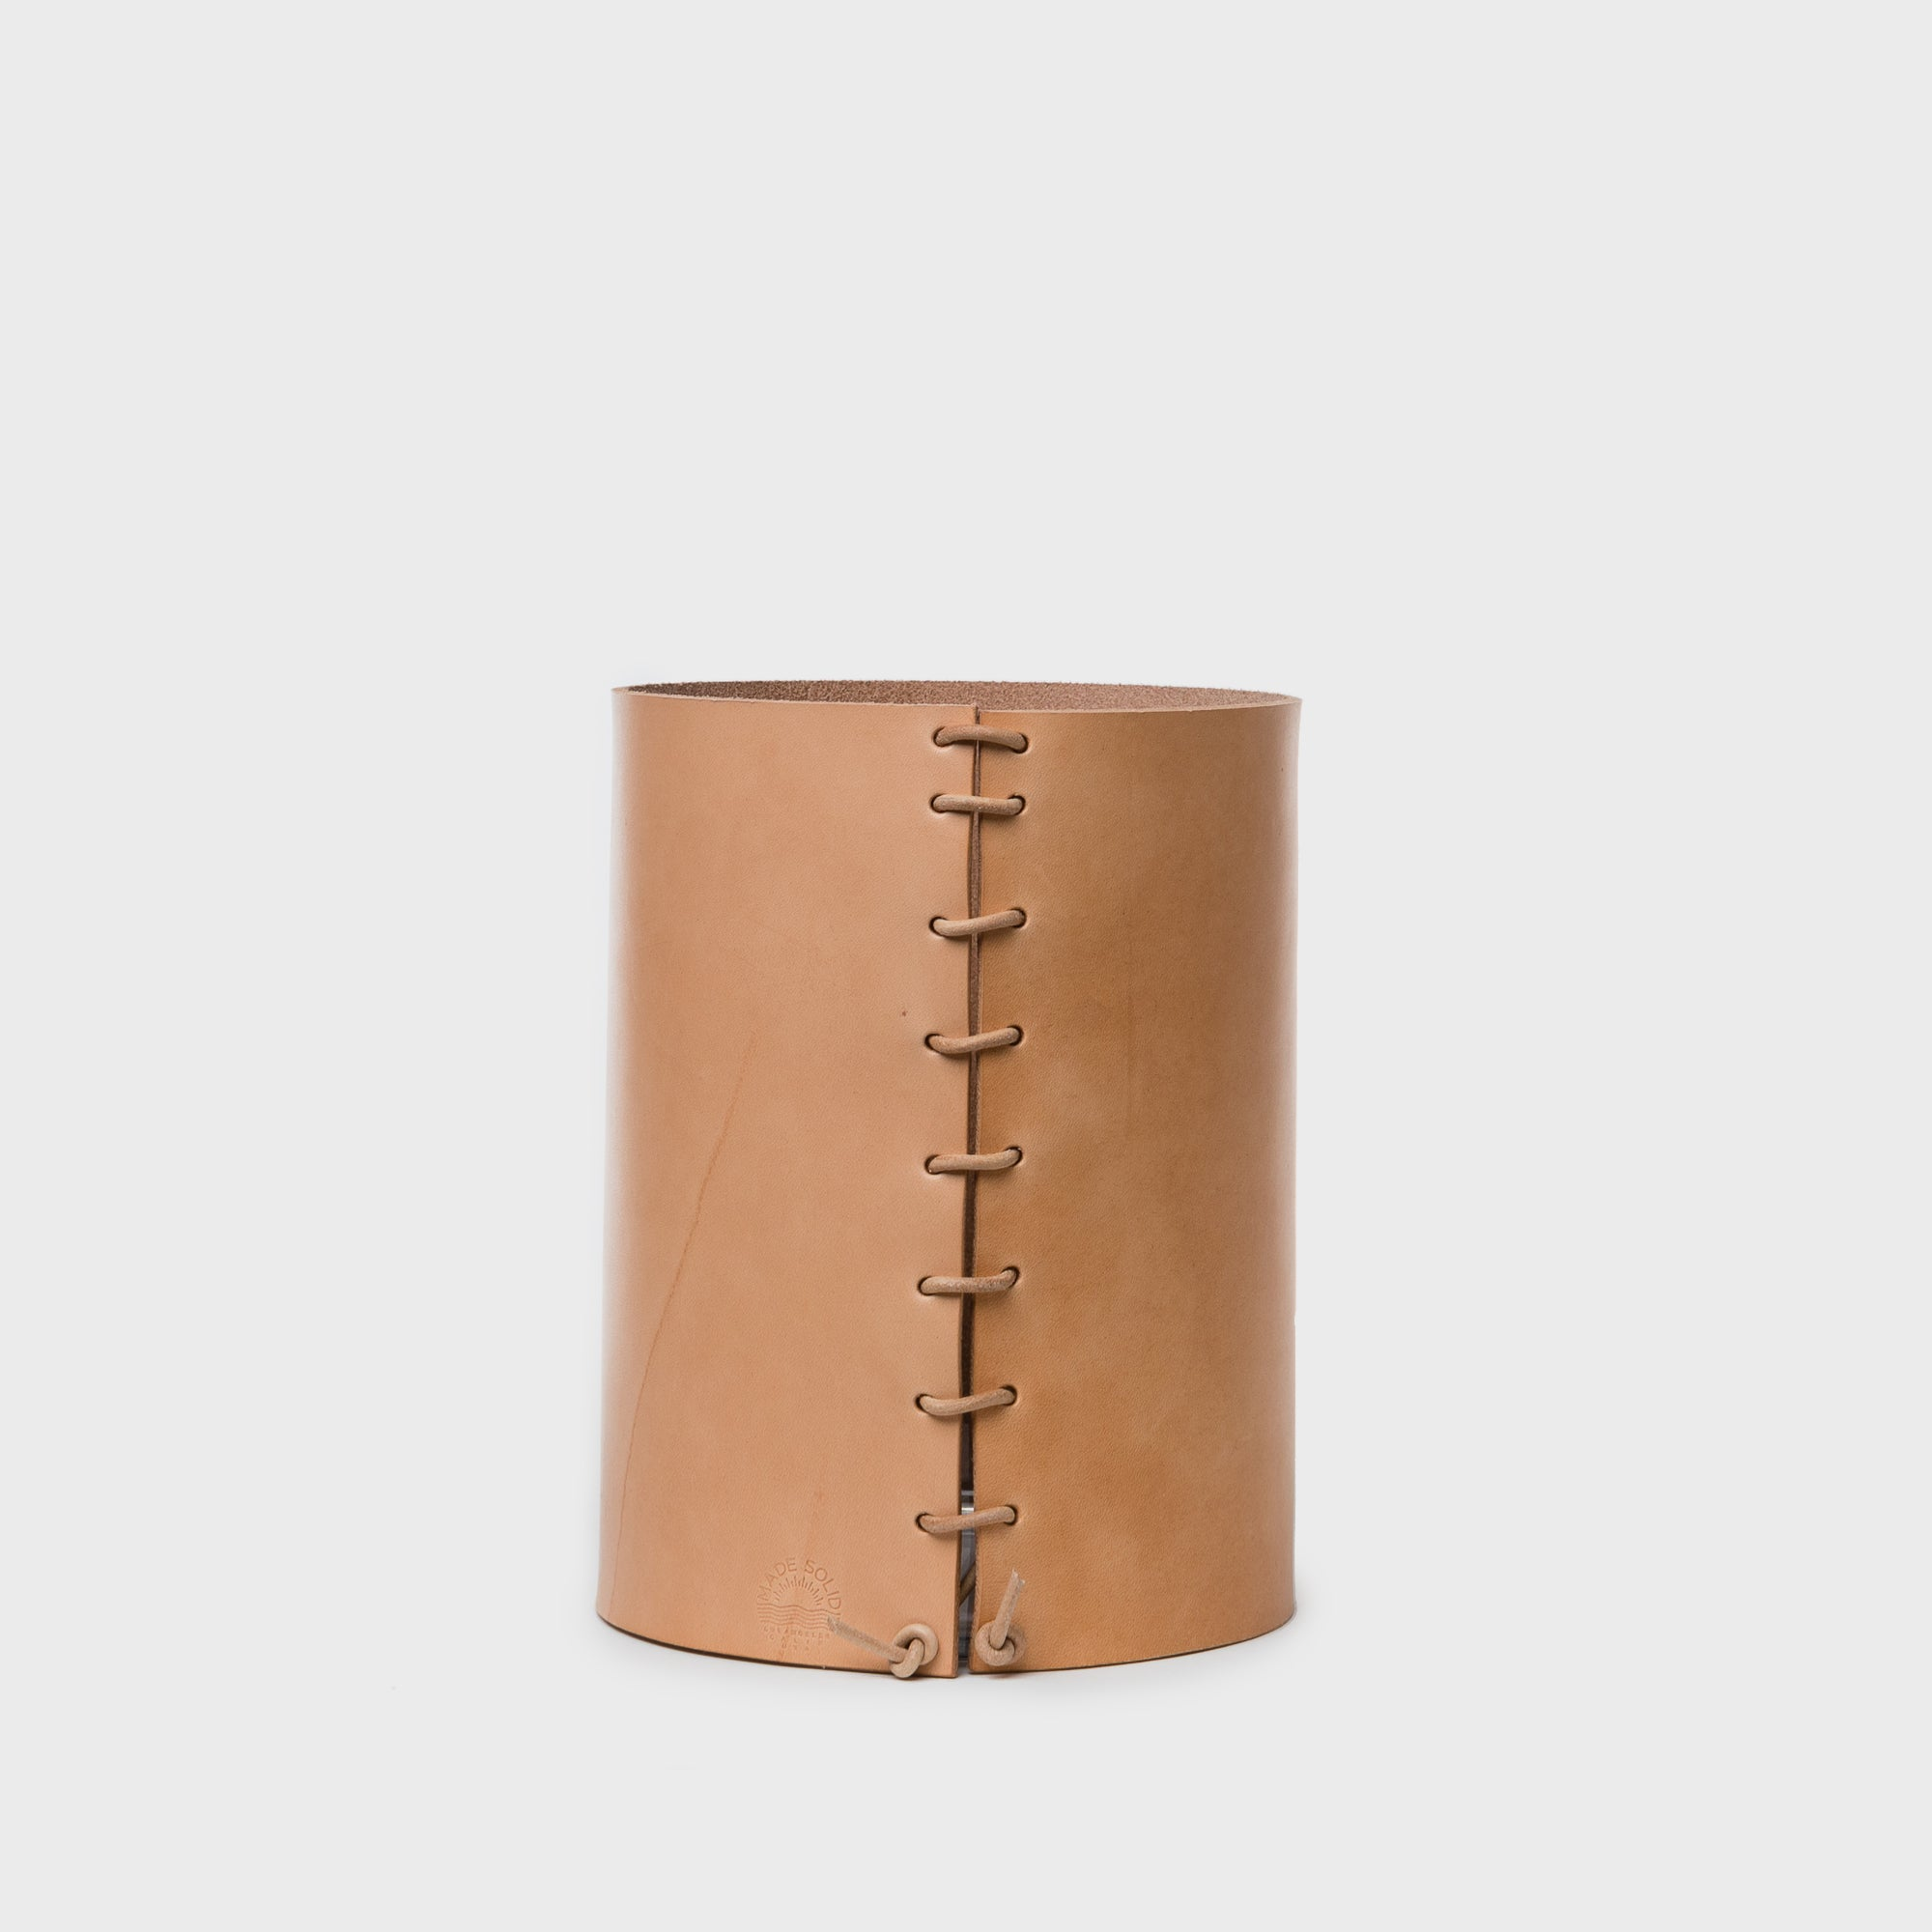 Leather Wrapped Vase - Home Accessories - Bowls & Vases - New – Shoppe Amber Interiors